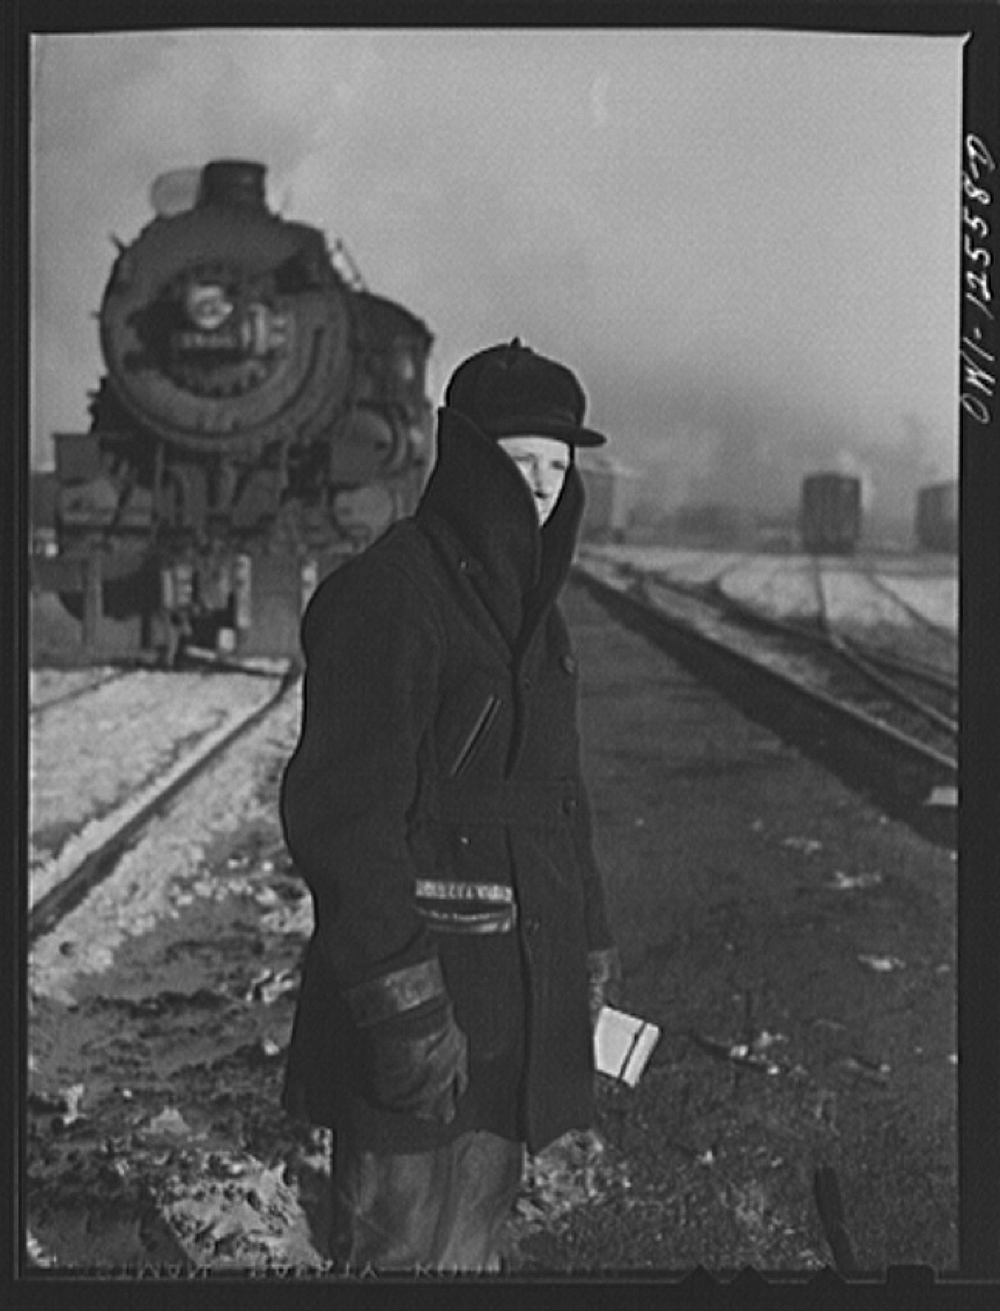 Chicago, Illinois. Switchman waiting for the train